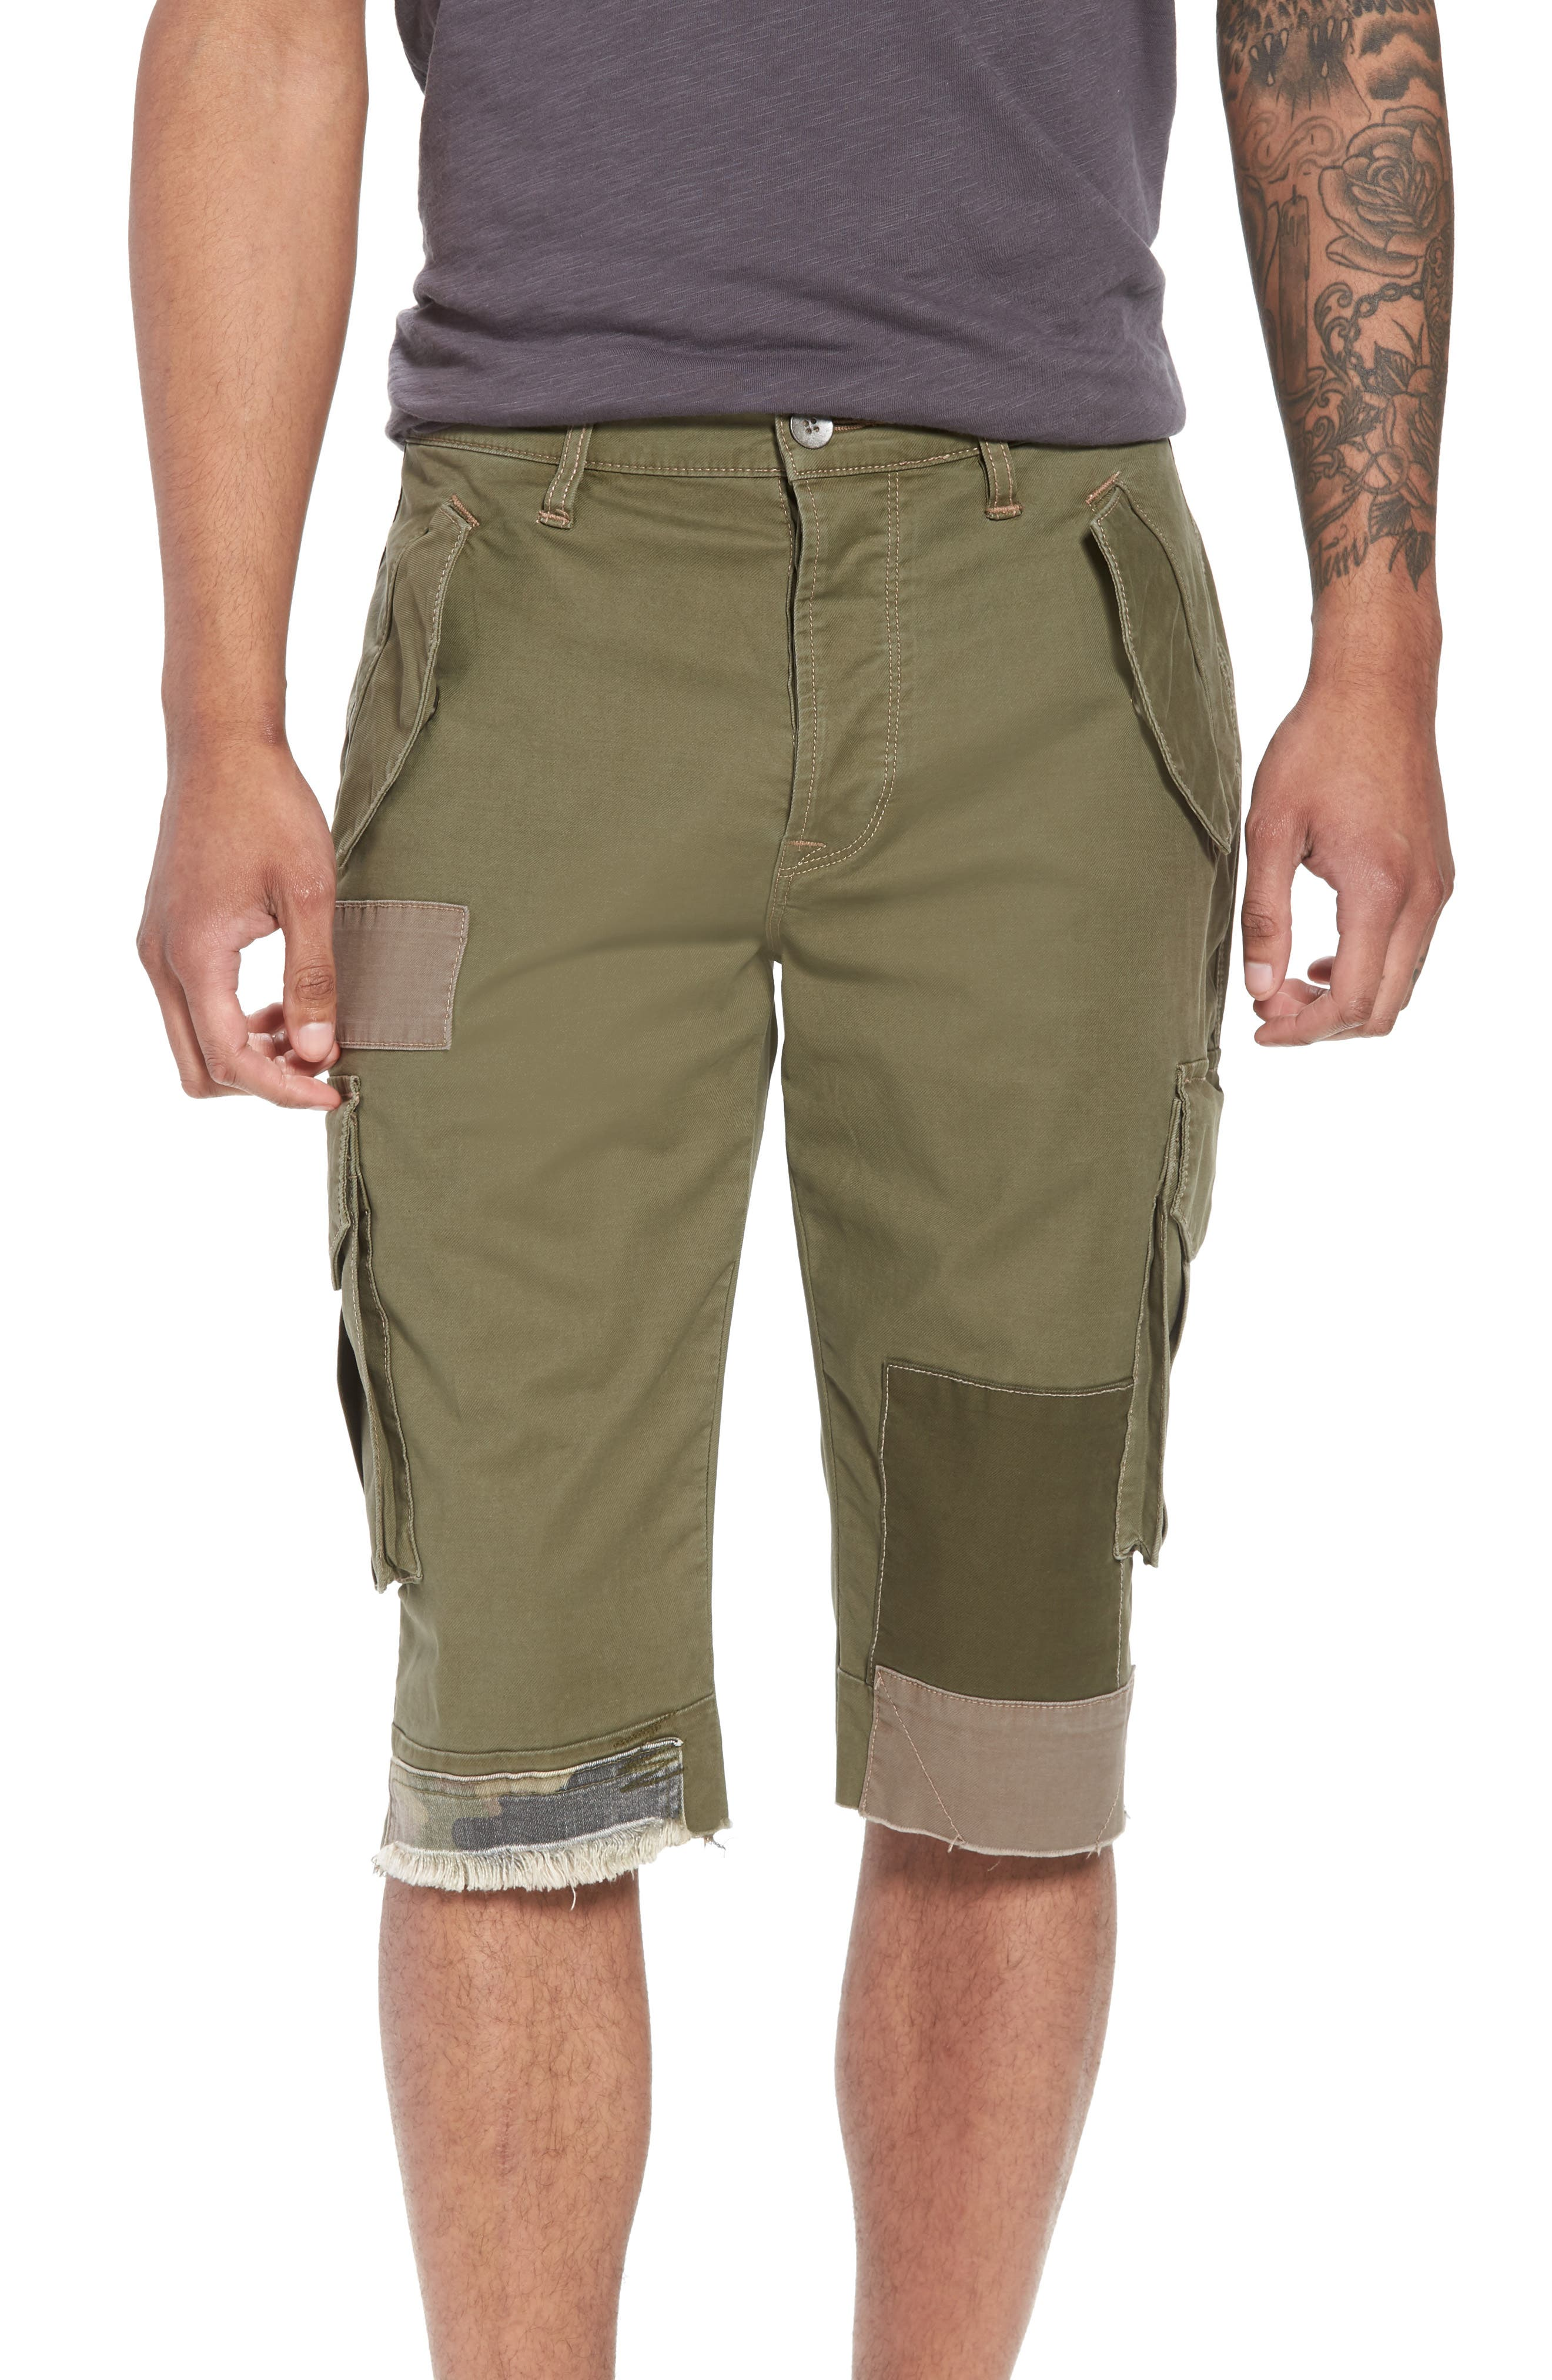 Slim Fit Cargo Shorts,                             Main thumbnail 1, color,                             359